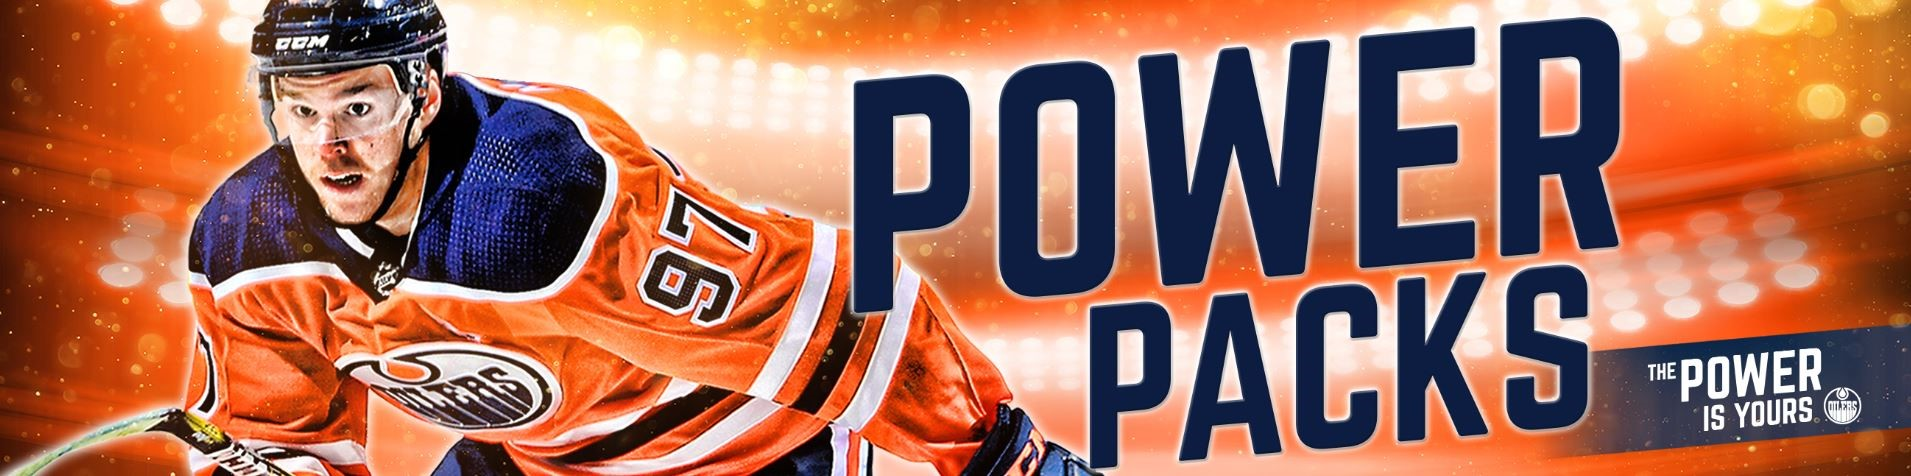 EDMONTON OILERS POWER PACKS PRE-SALE PURCHASE ACCOUNTS